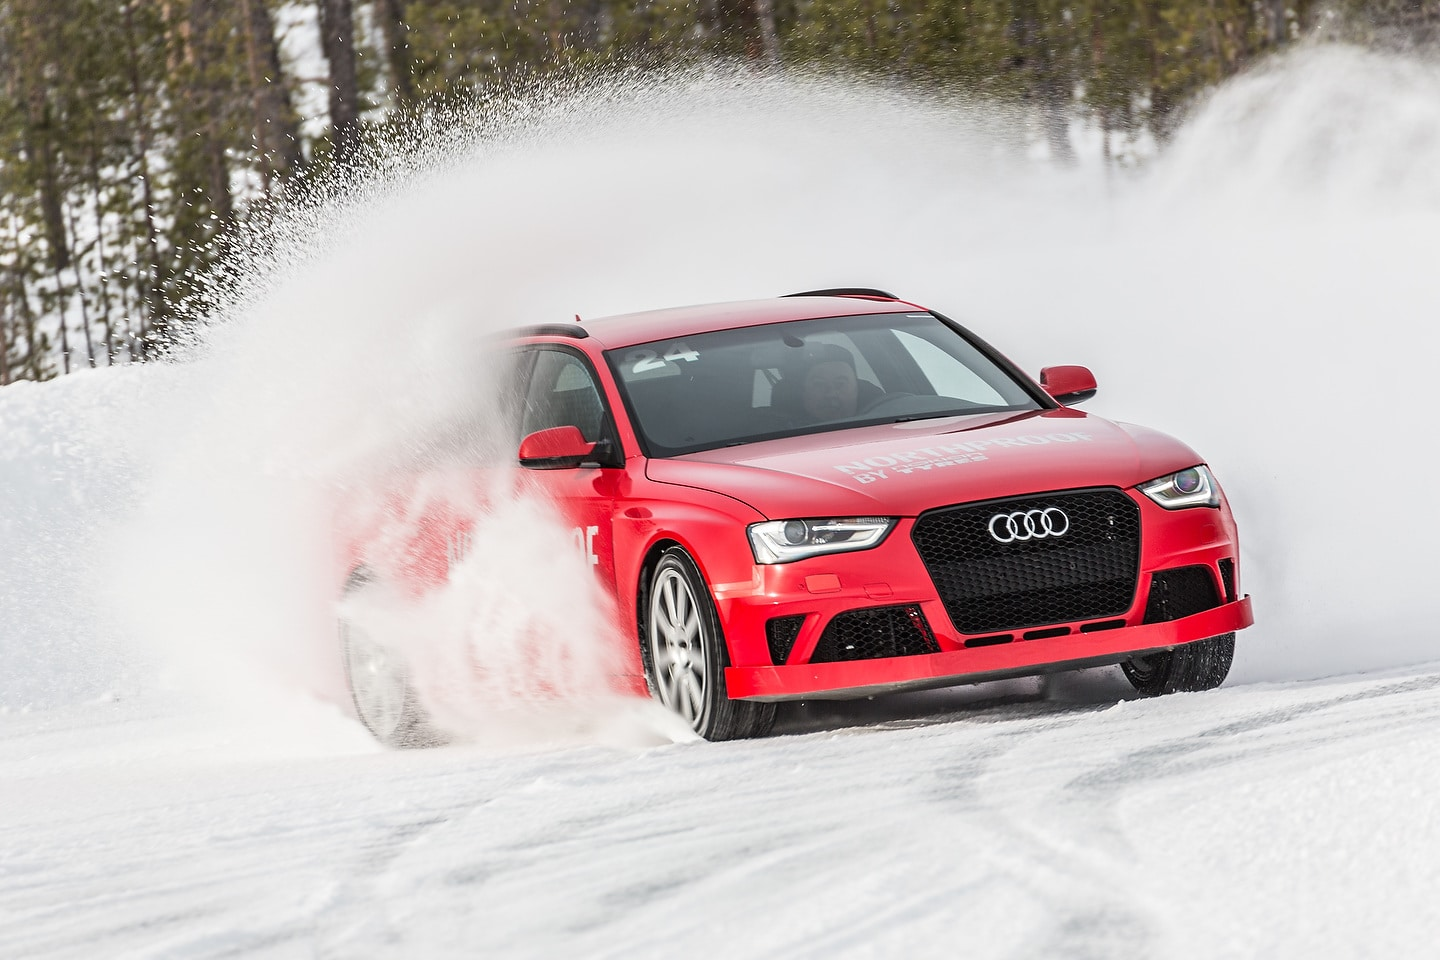 Winter tire testing with an Audi RS 4 Avant